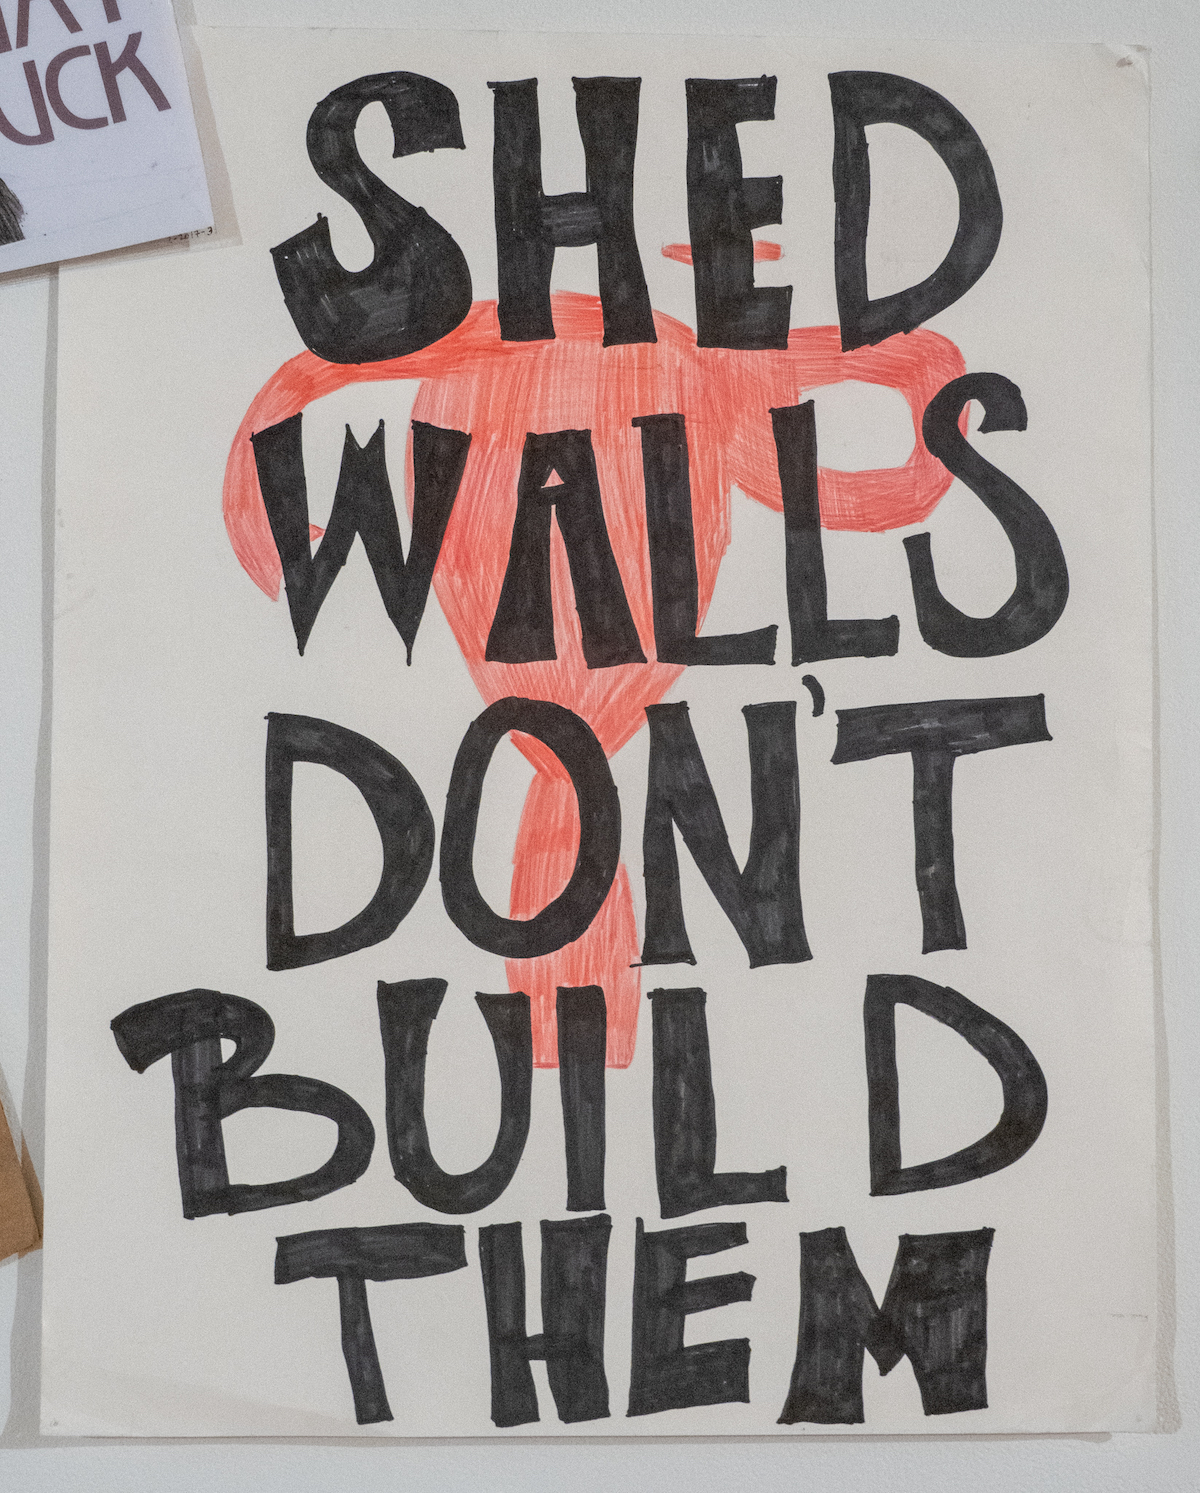 Shed Walls Don't Build Them